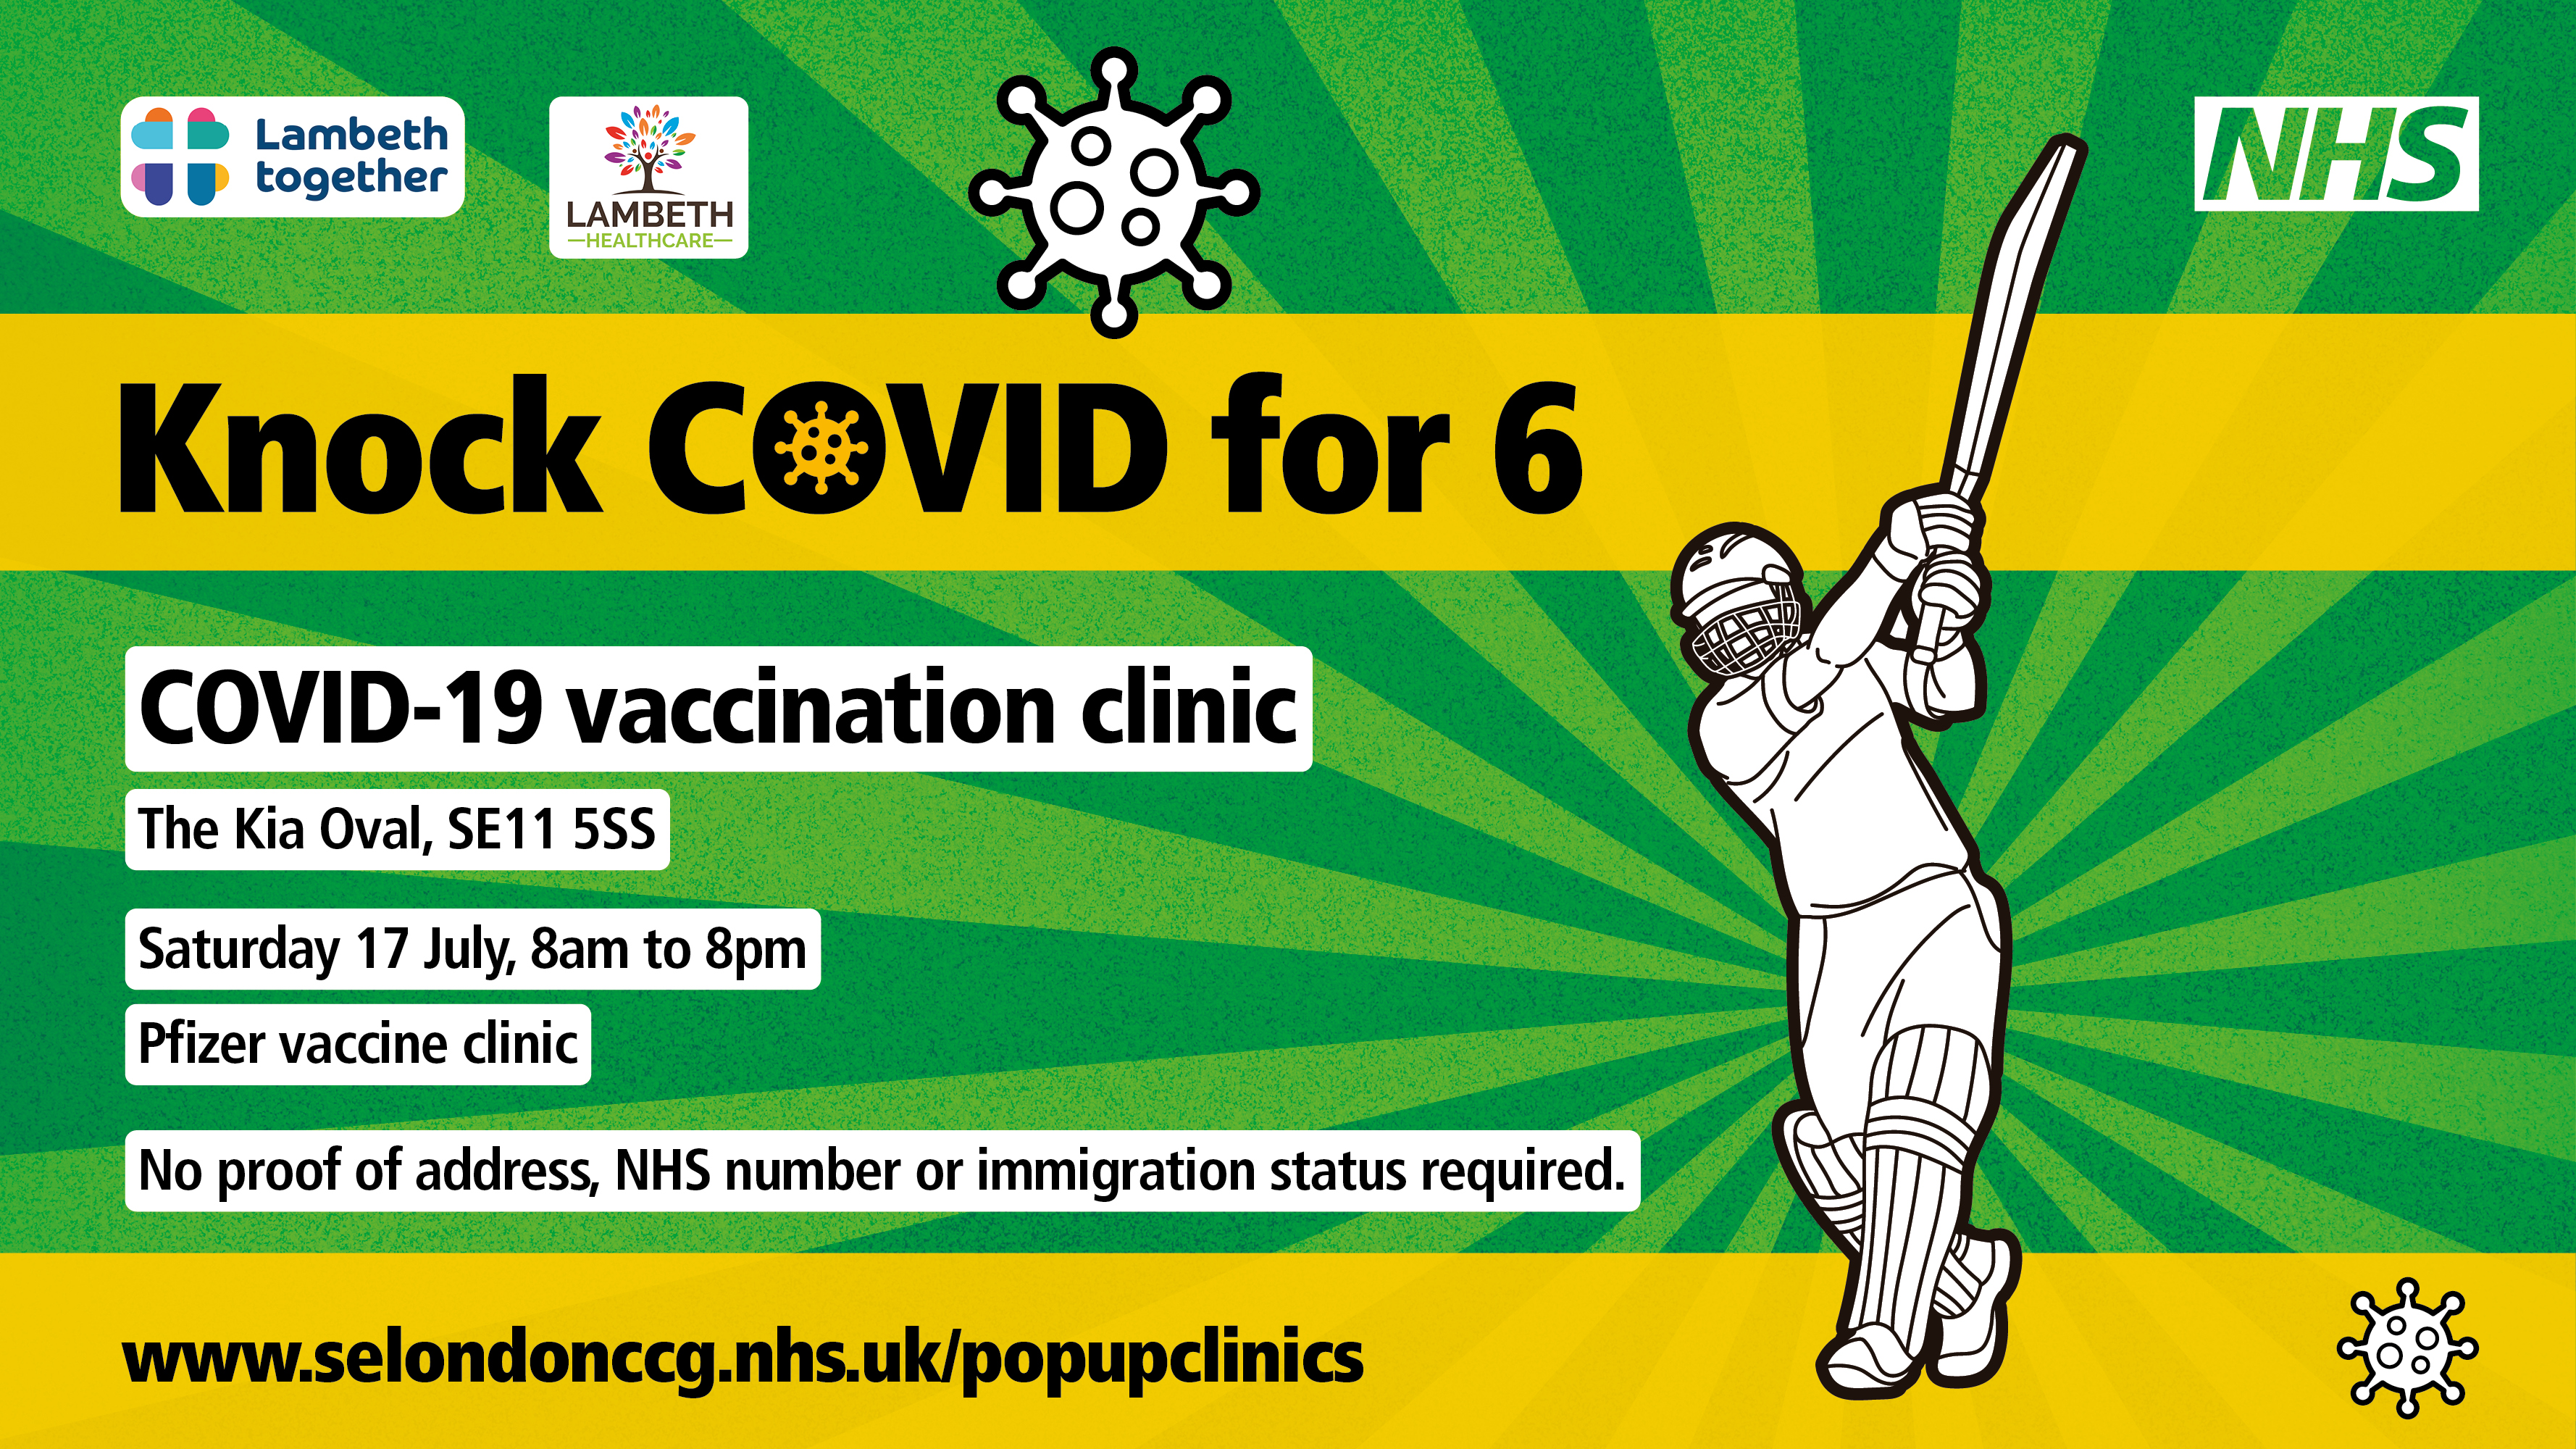 Knock Covid for 6 at The Kia Oval this weekend